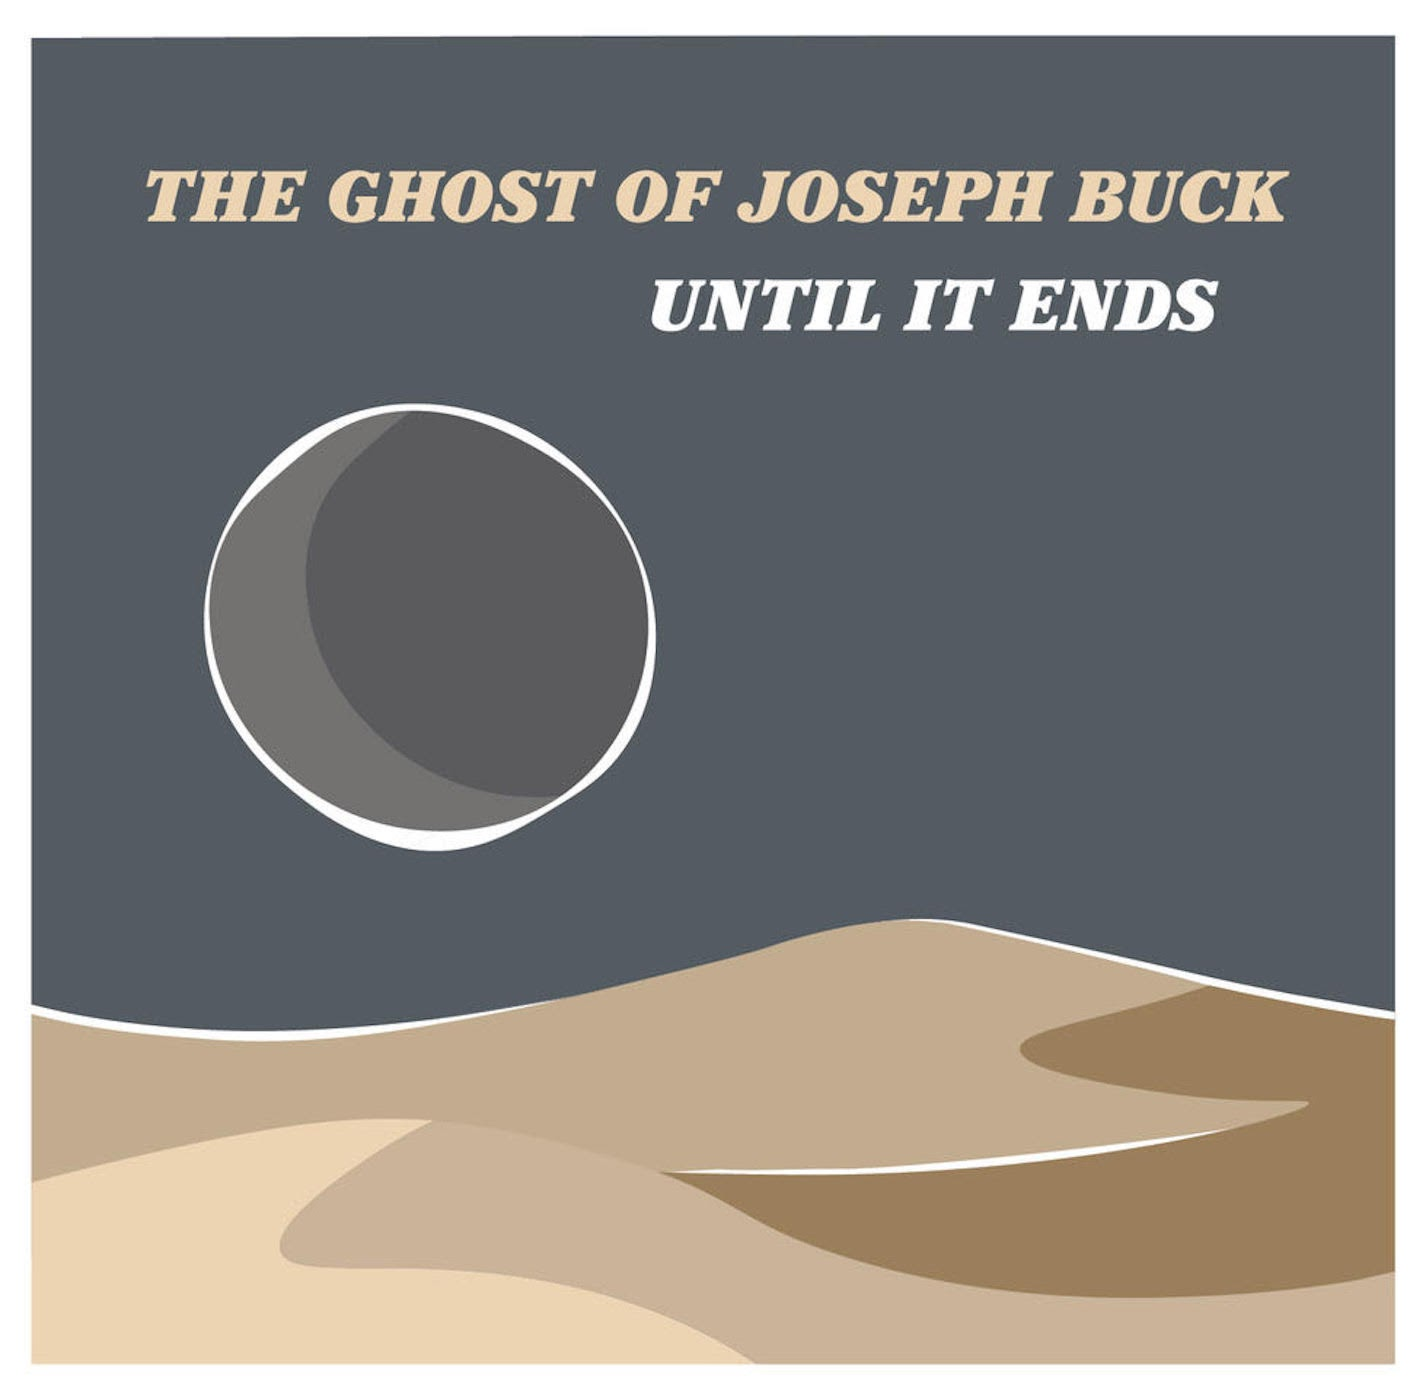 The Ghost of Joseph Buck Released New Single and New Album with Desert Noir and Spaghetti Western Vibes